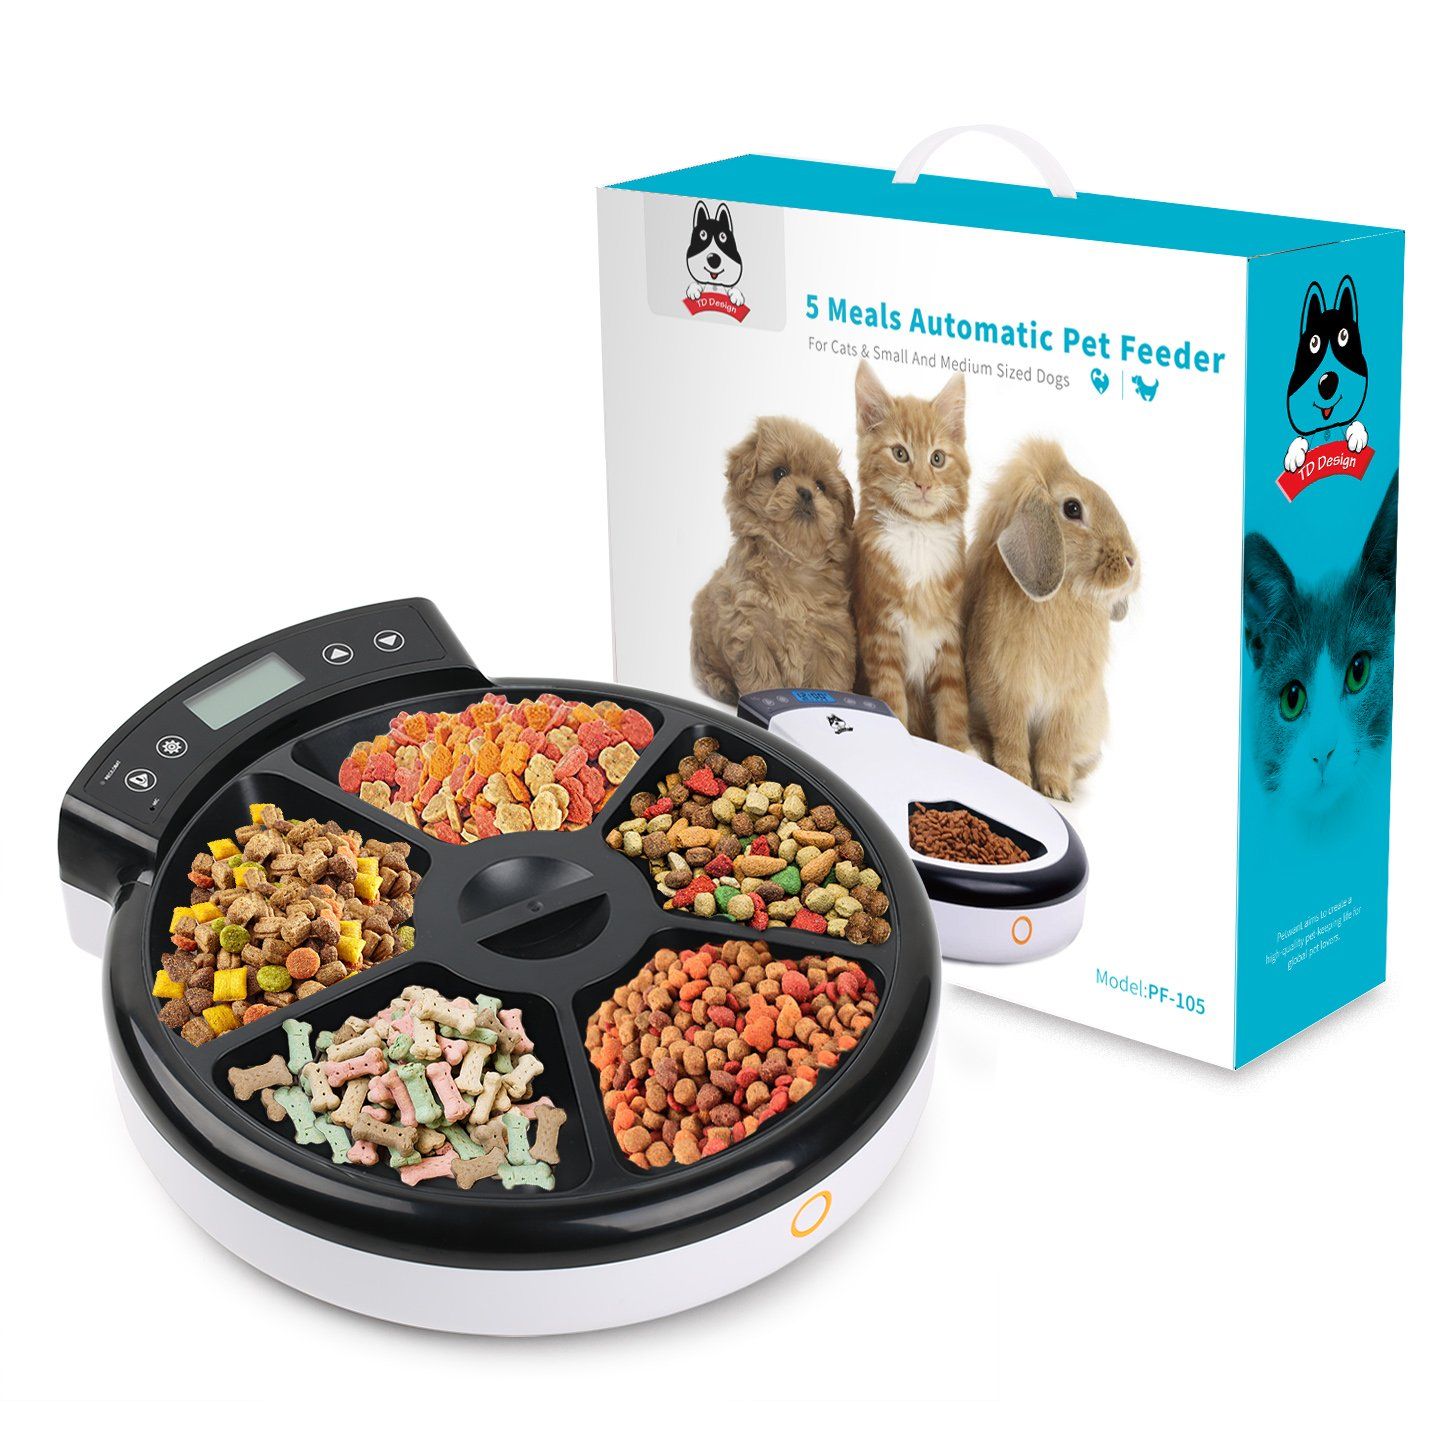 TDYNASTY DESIGN Automatic Pet Feeder for Dogs & Cats | Dry & Wet Food - 5 Meals, 5 x 240ml by TDYNASTY DESIGN (Image #3)